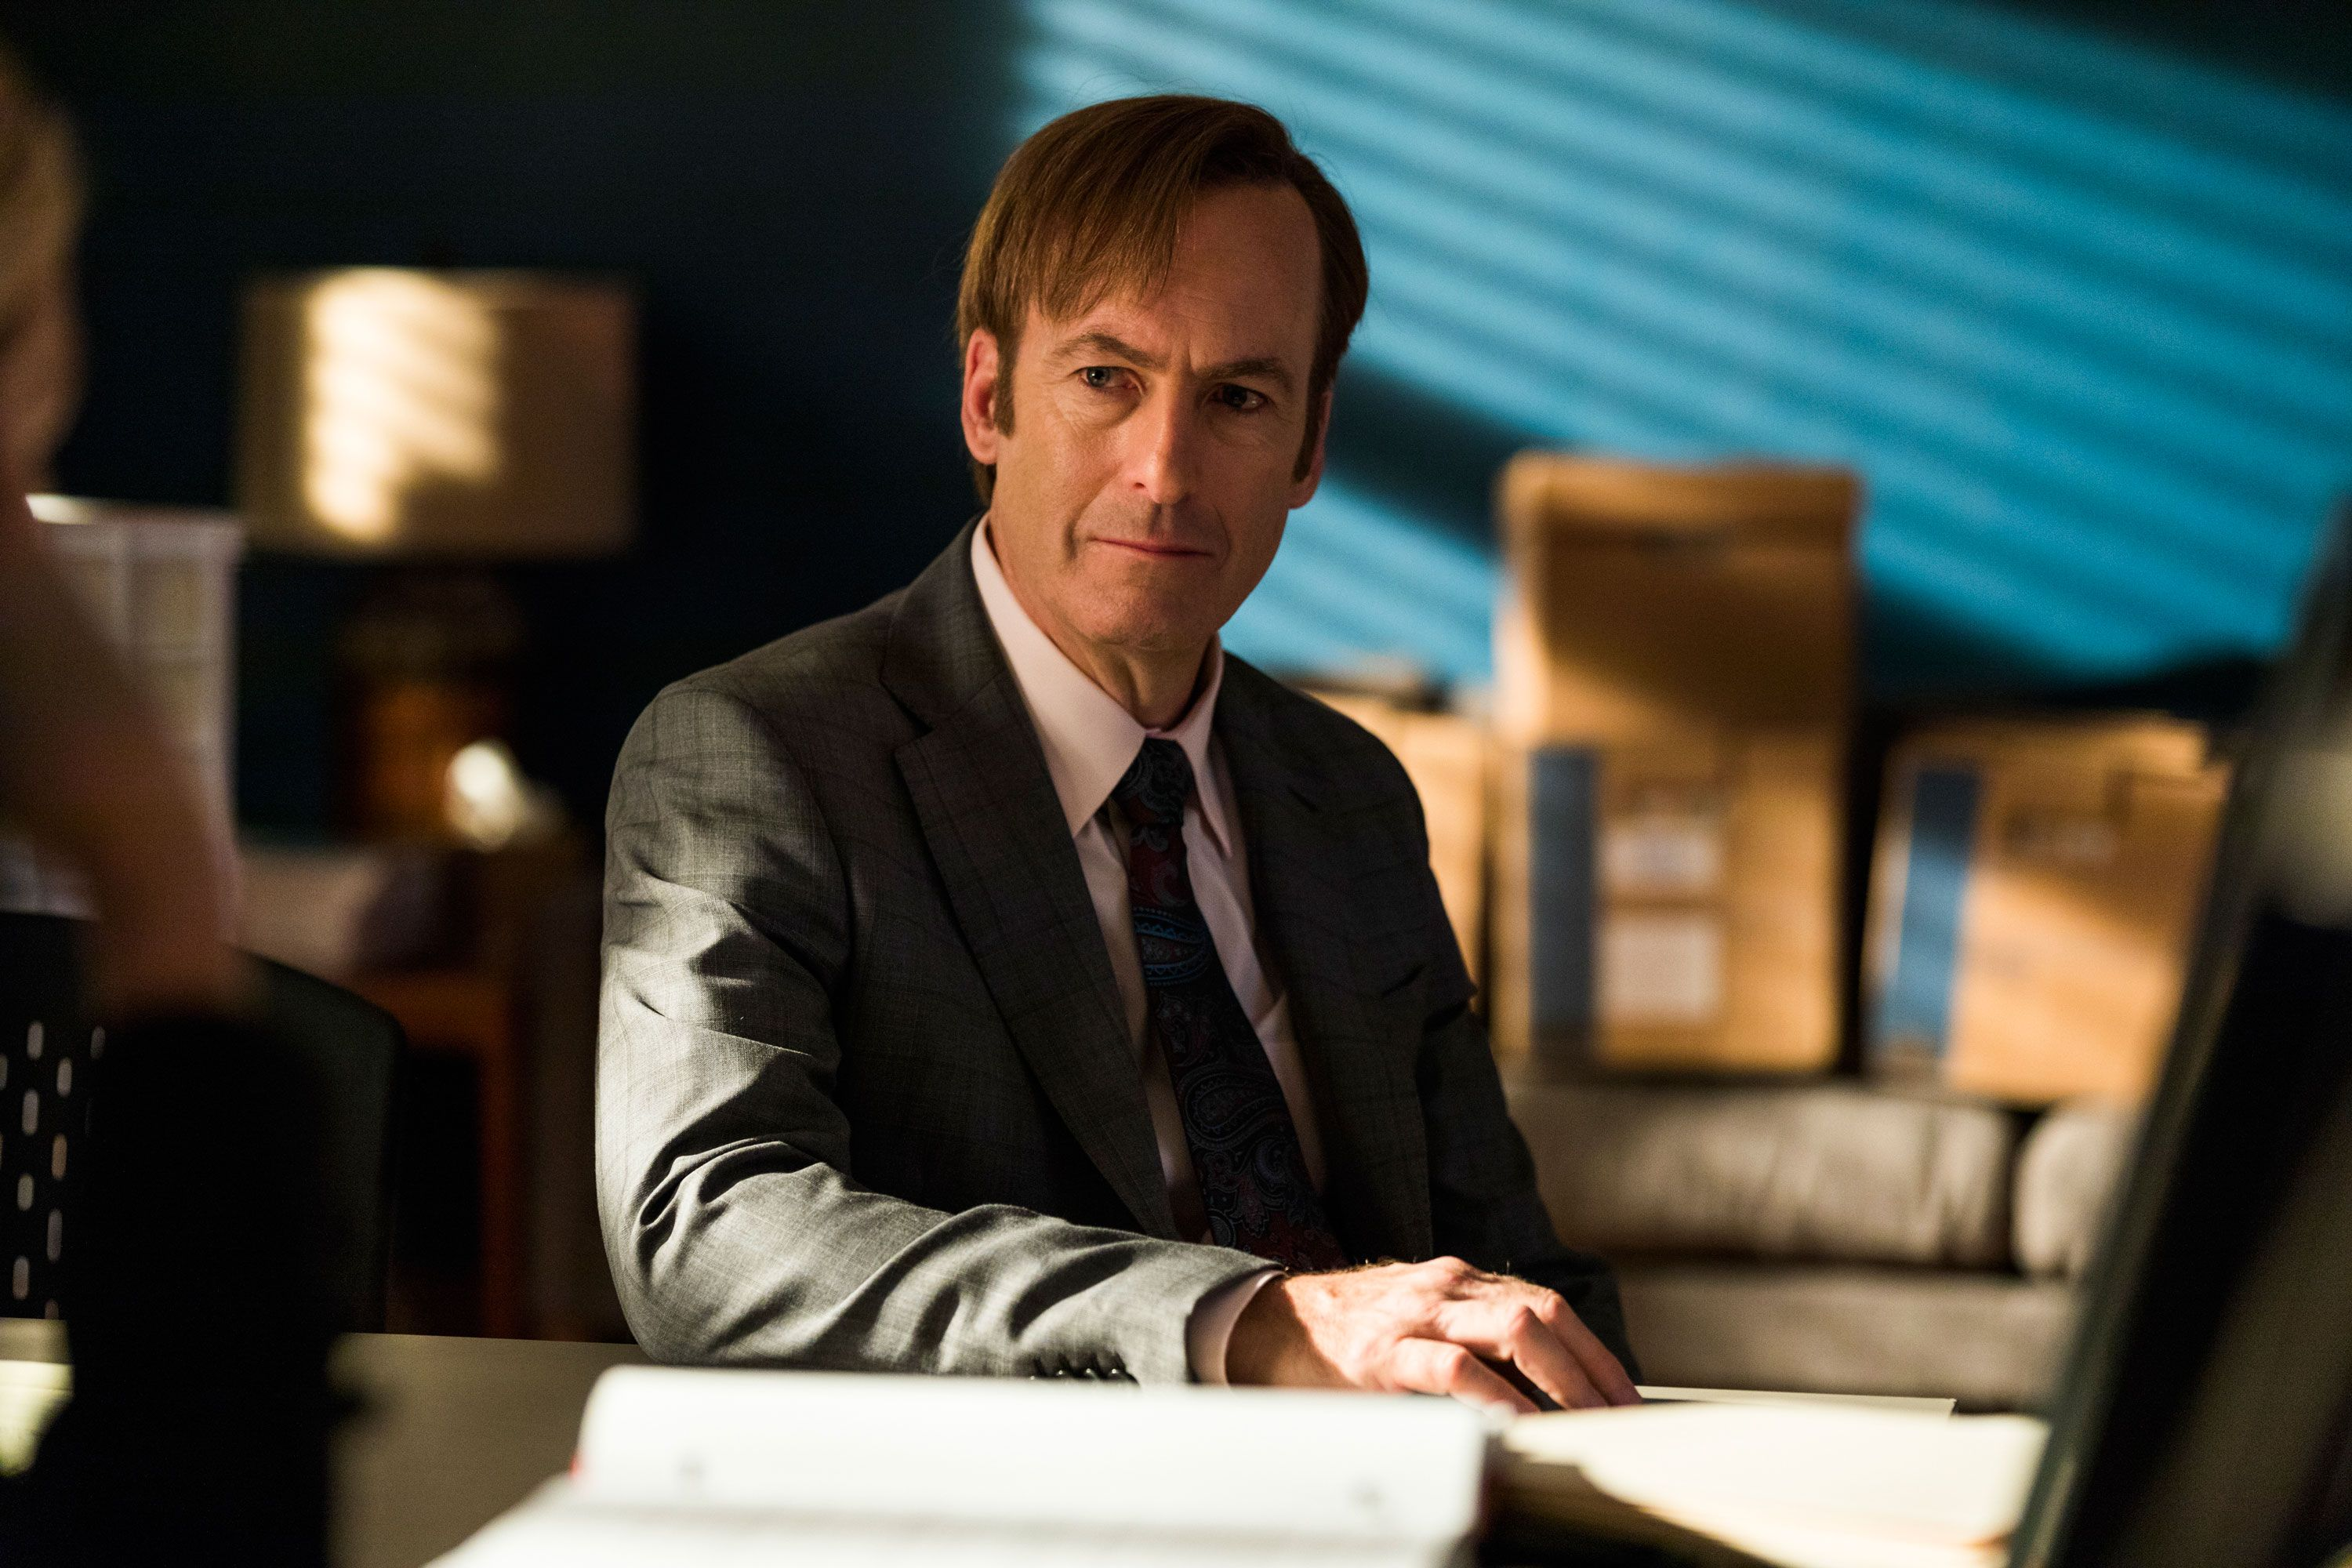 'Breaking Bad' Star Bob Odenkirk Reveals Secret About The Spin-Off Movie